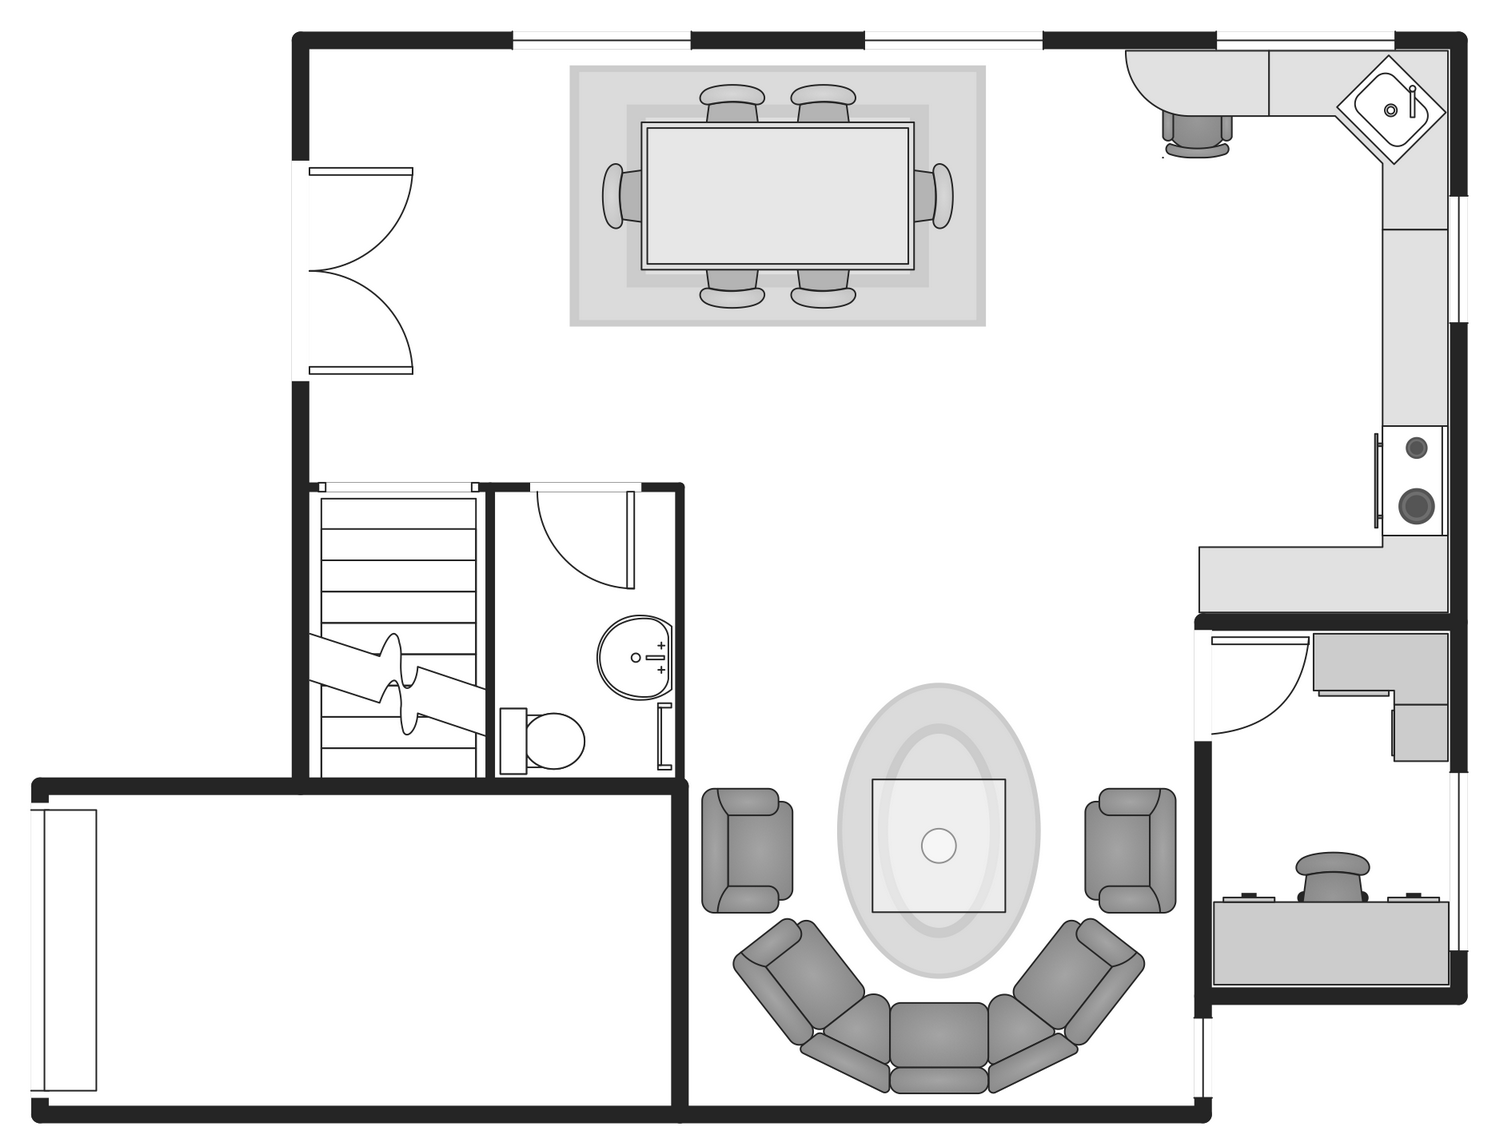 New Basic Floor Plans Solution For Complete Building Design